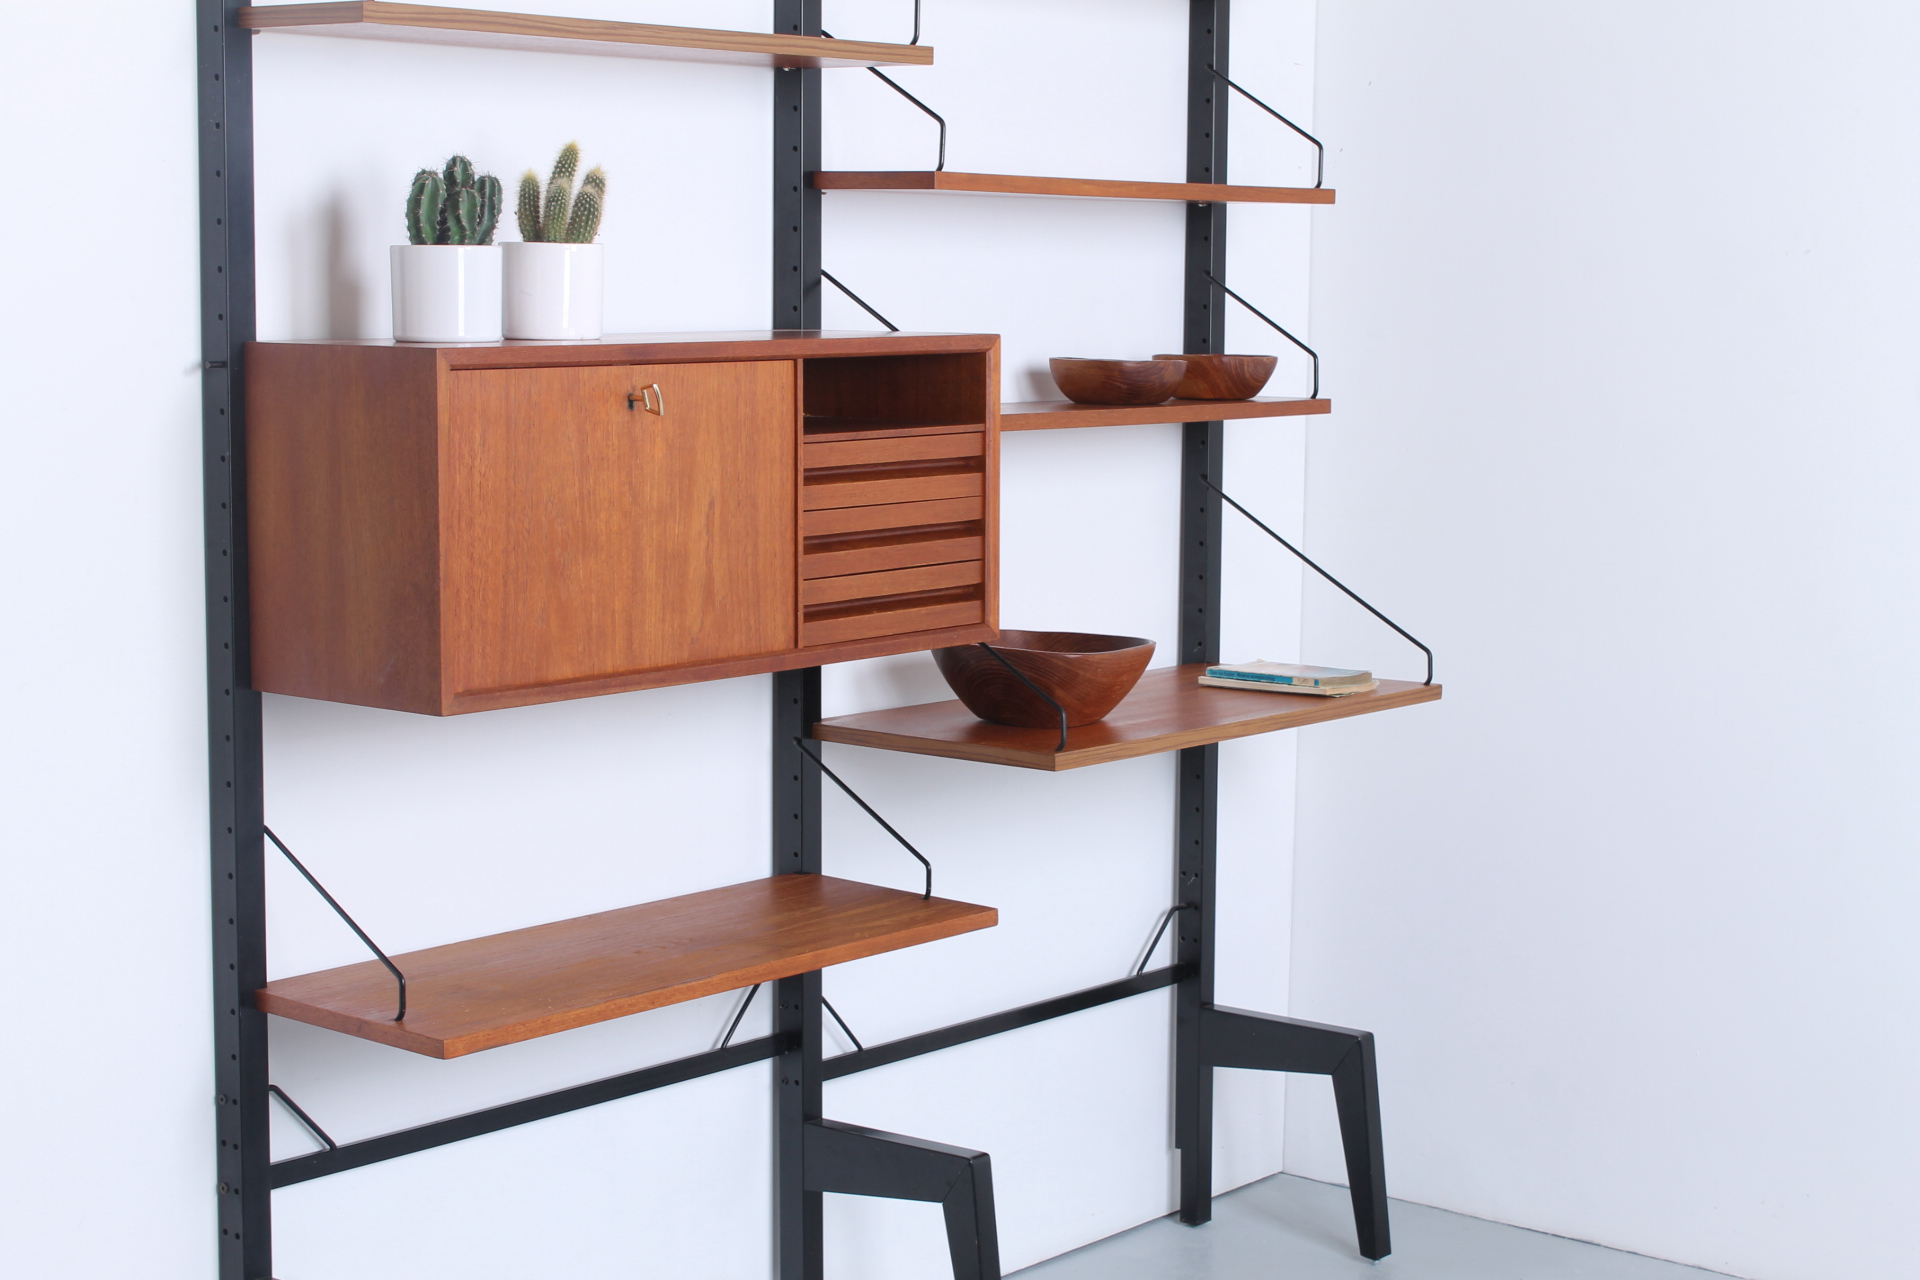 Royal System Modular Wall Unit by Poul Cadovius for Cado, 1960s.